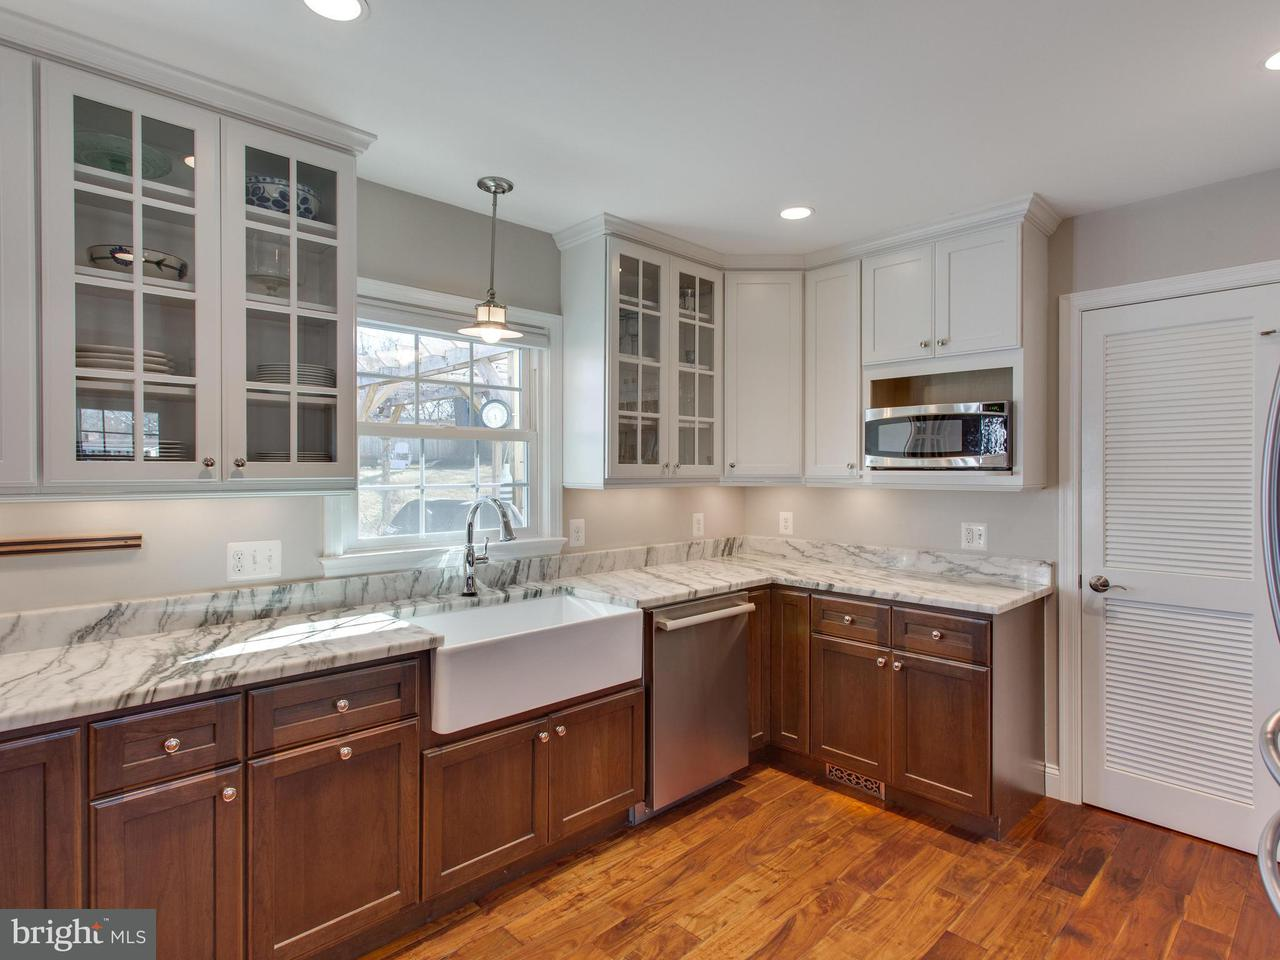 Additional photo for property listing at 8317 Cedardale Drive 8317 Cedardale Drive Alexandria, Virginia 22308 Vereinigte Staaten